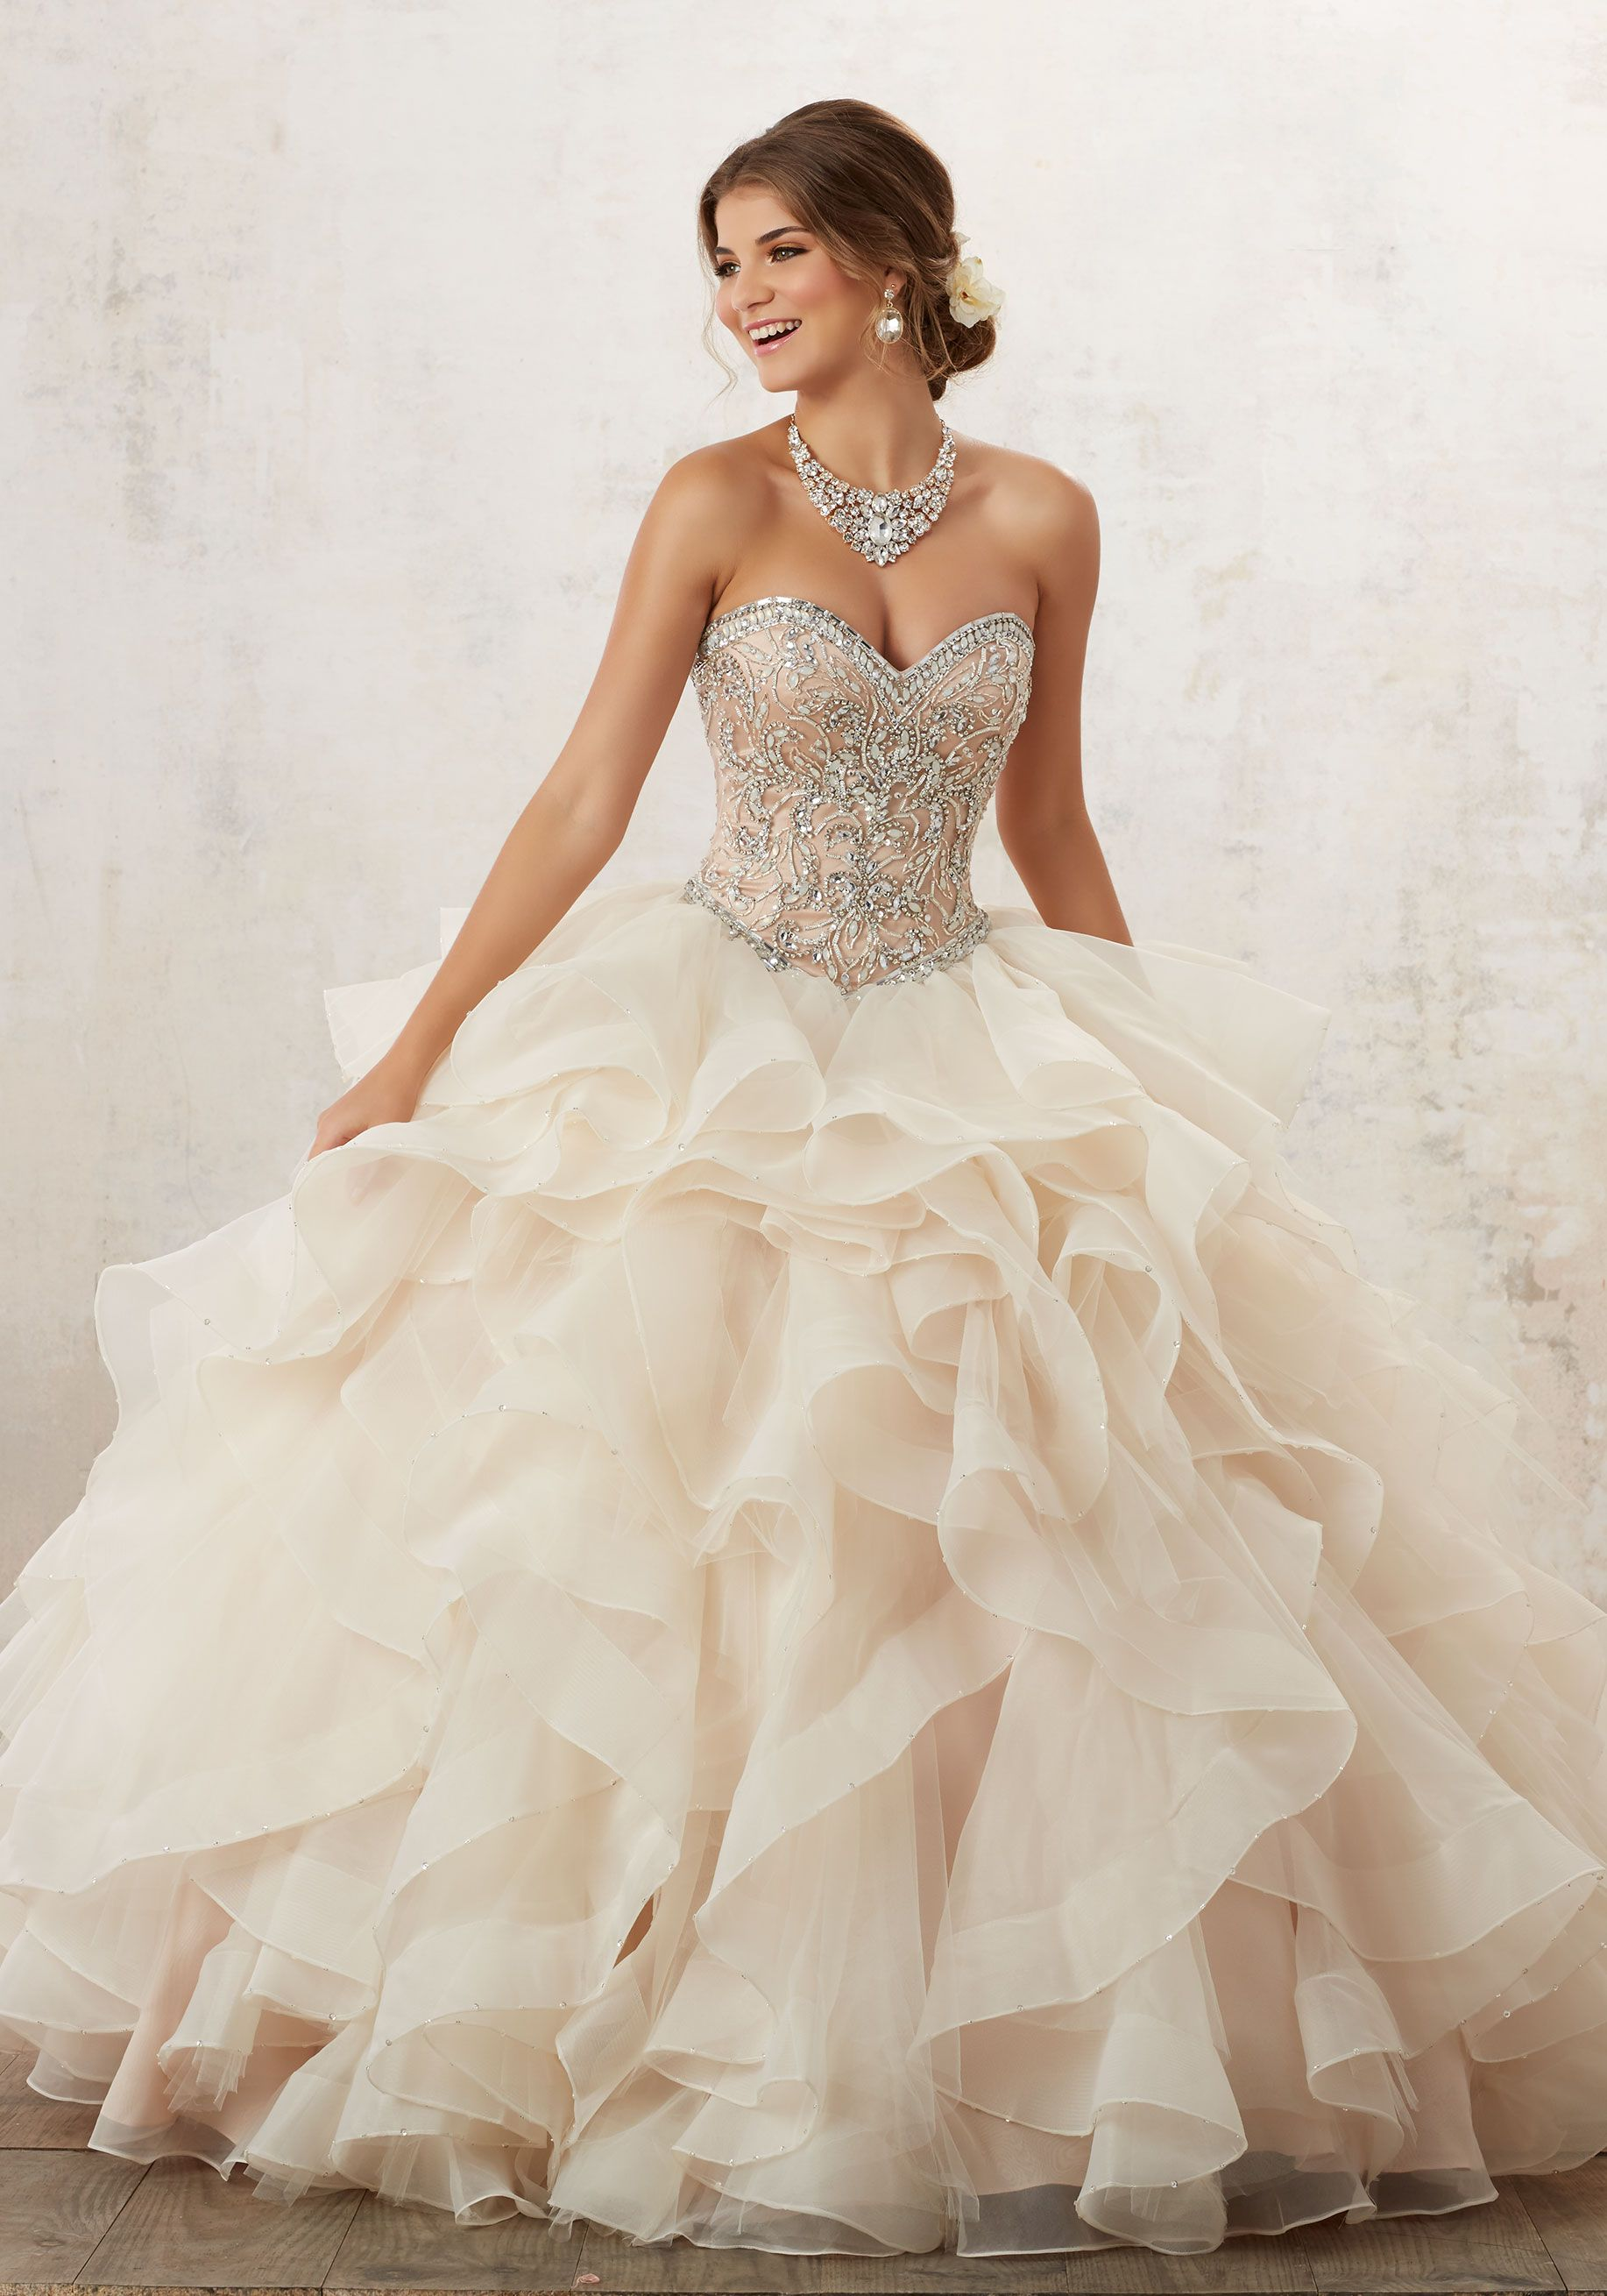 Morilee Quinceanera Dresses STYLE NUMBER  89126 Jeweled Beading on a  Flounced Organza Ballgown This Classic Quinceañera Ballgown Perfectly  Combines a ... aa38fe5b7356